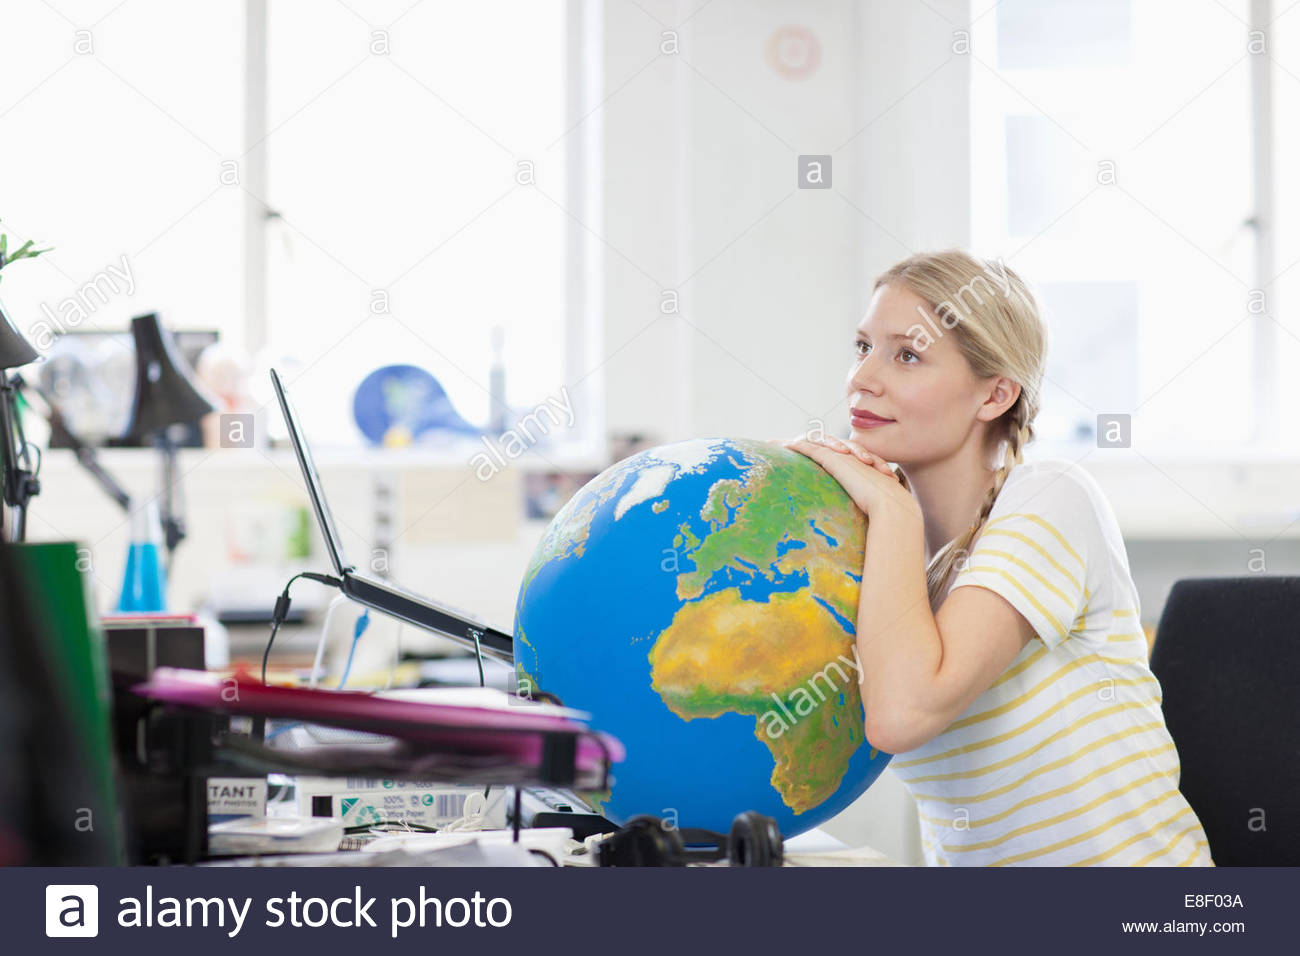 Pensive businesswoman leaning on globe at desk in office - Stock Image